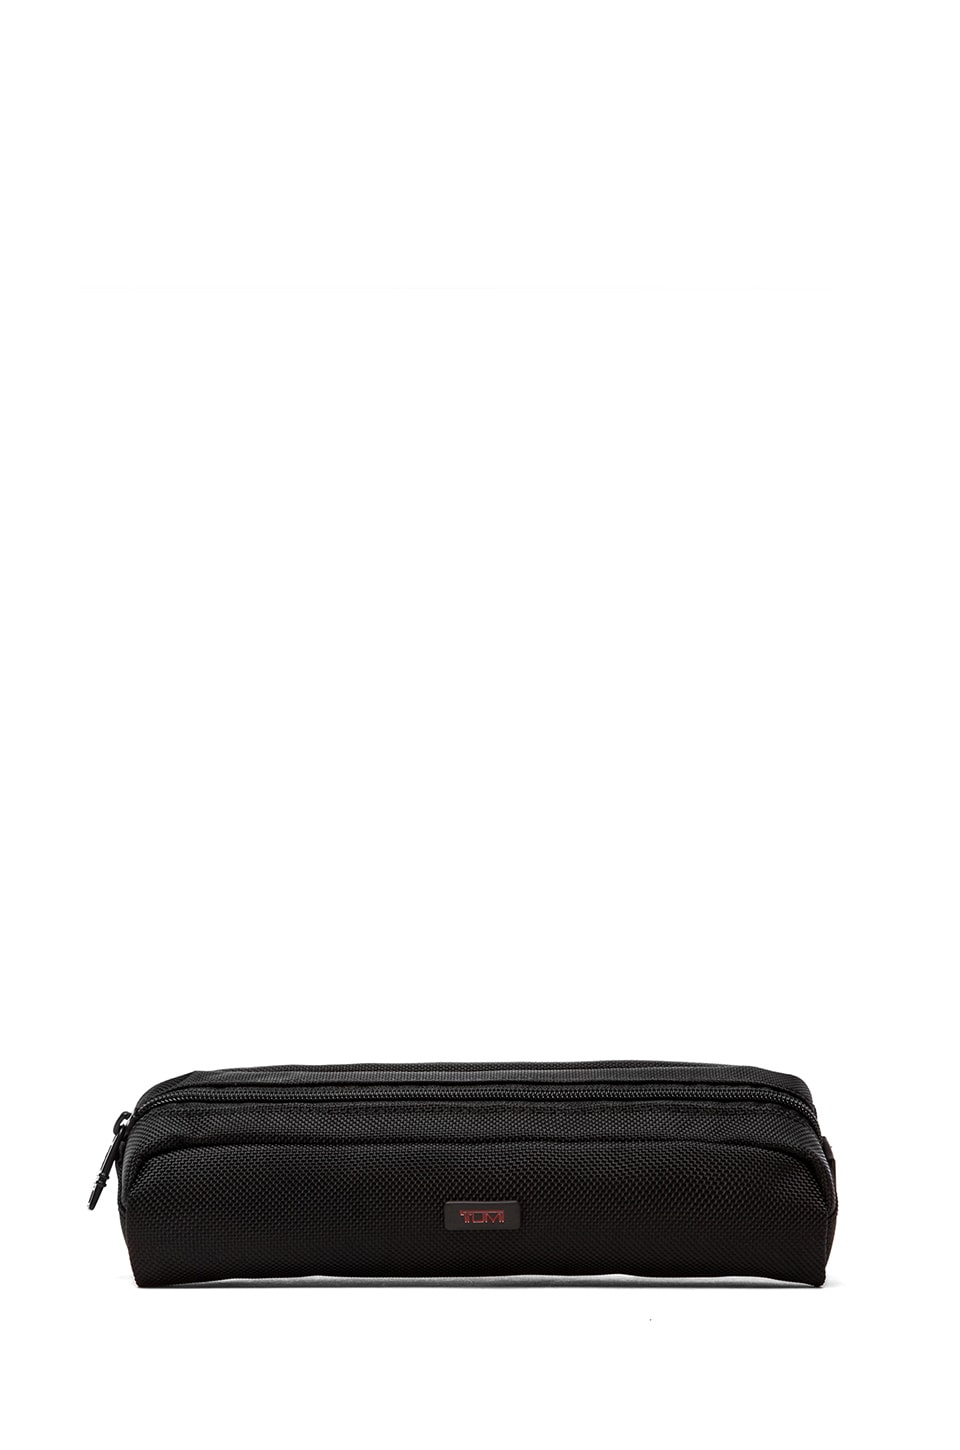 Tumi T-Tech Forge Lambert Satchel in Terrain